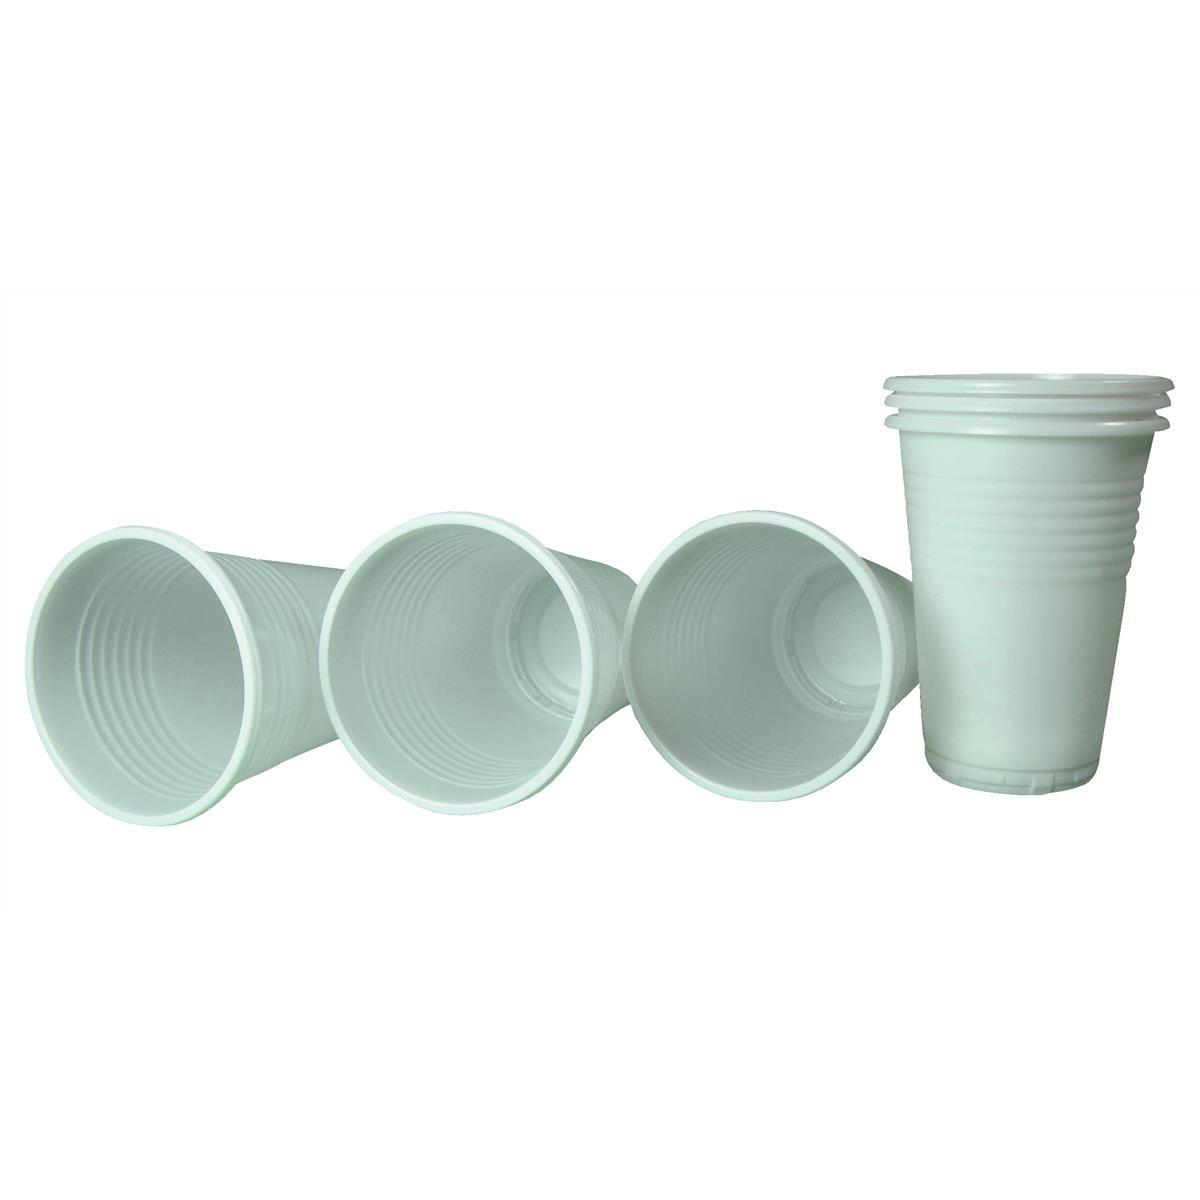 Vending Cups Biodegradable Tall 7oz 207ml Ref BCW-7 Pack 100